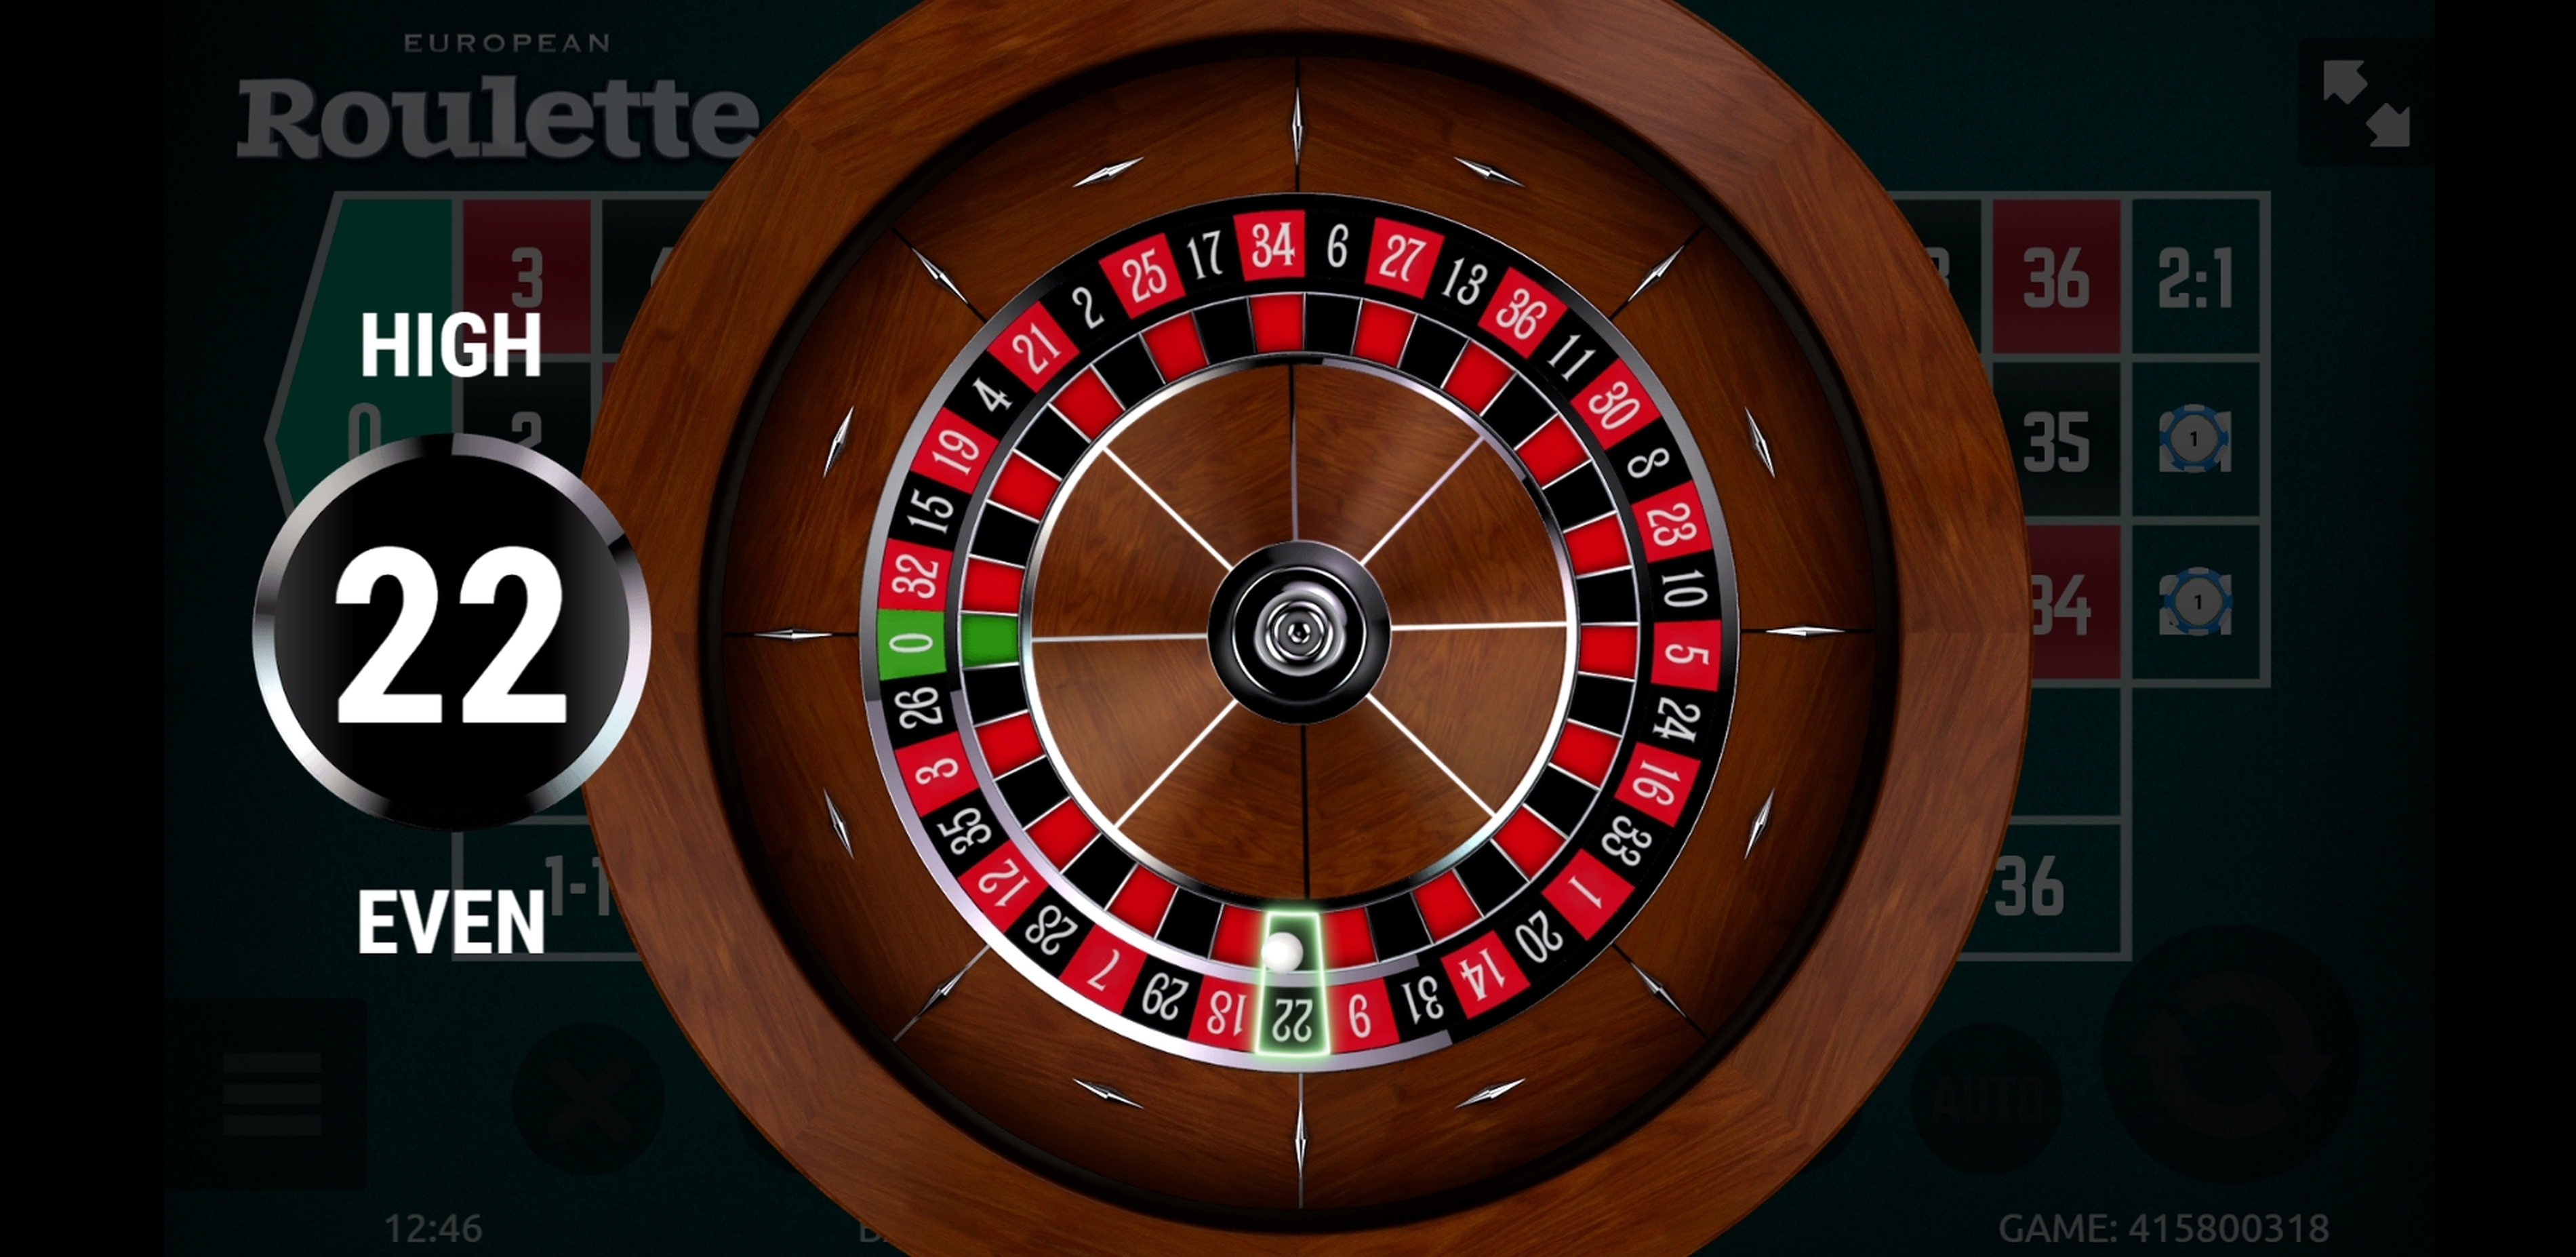 Win Money in European Roulette (gamevy) Free Slot Game by Gamevy